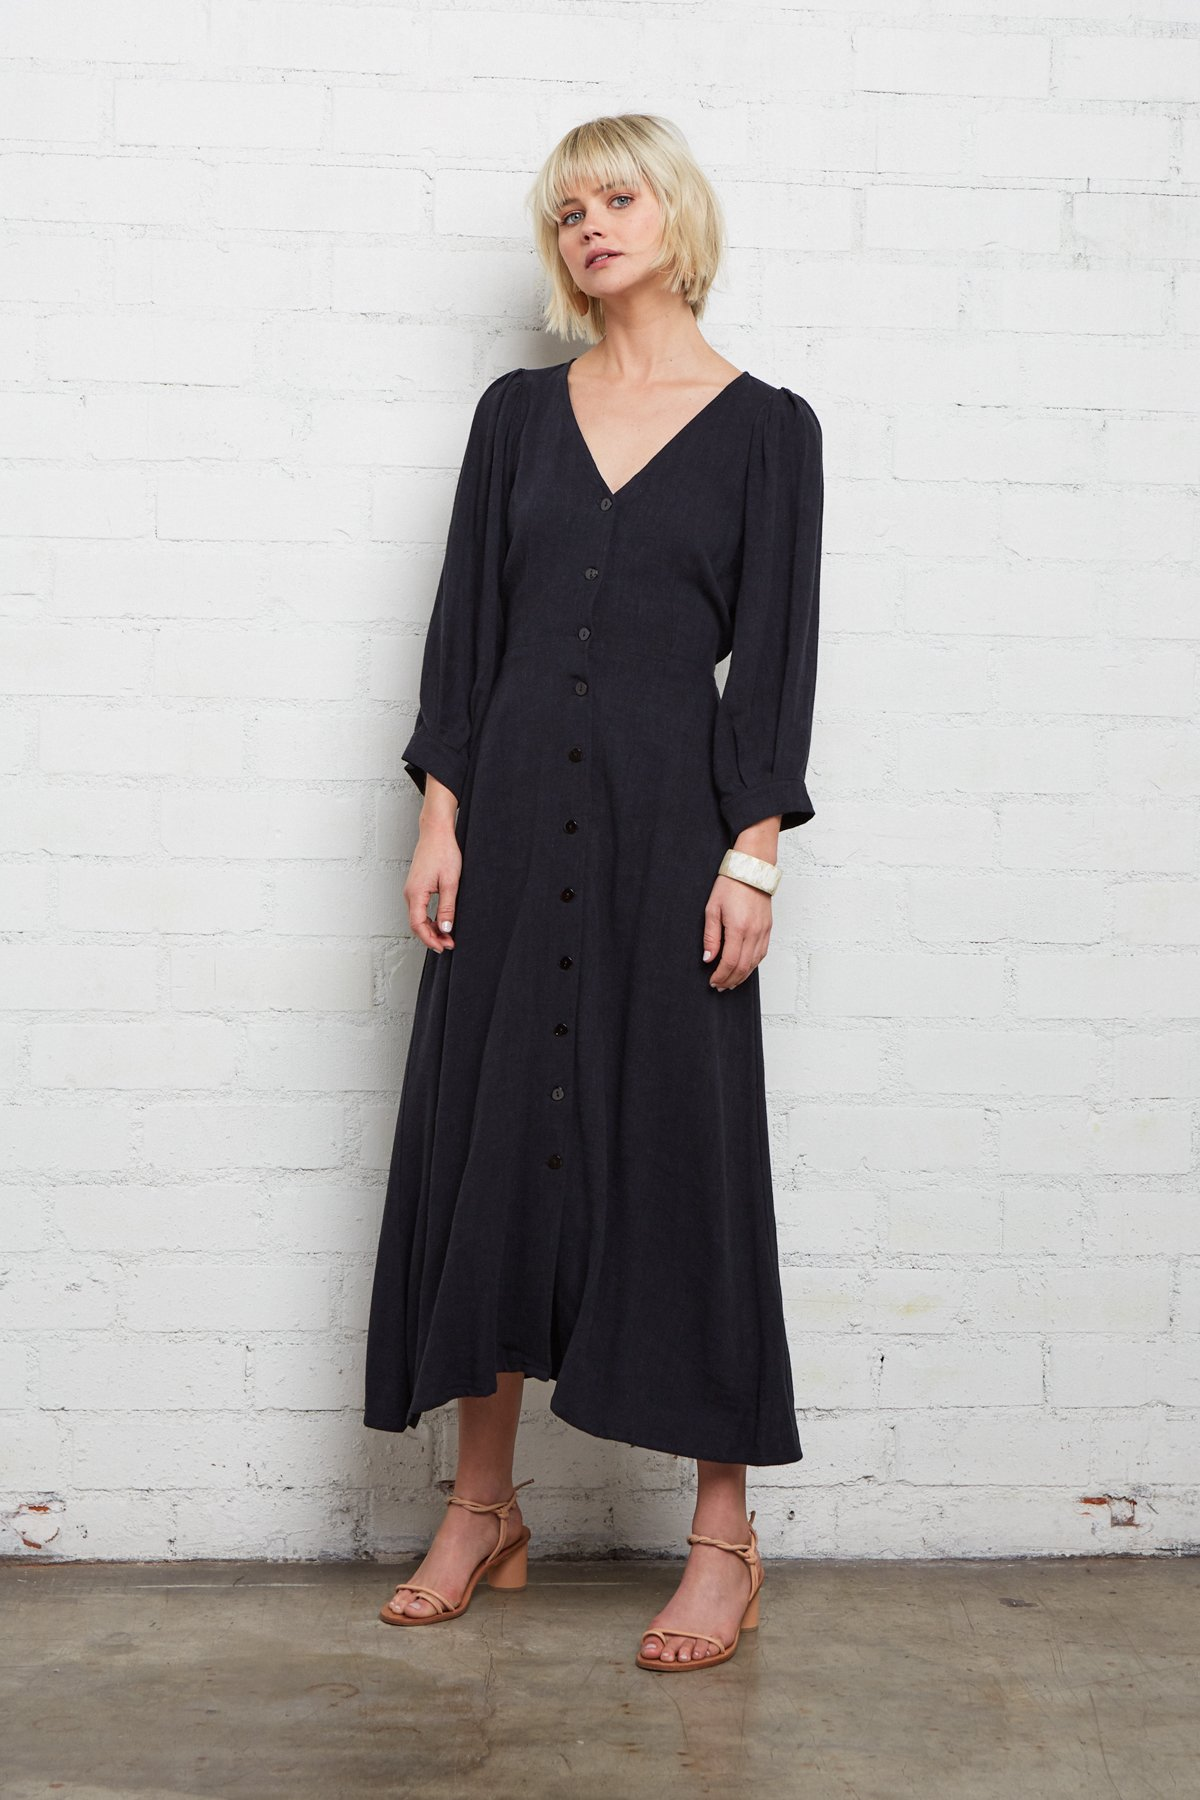 Rachel Pally - Linen Agness in Black.For an all day dress walking the city, this dress would be perfect. The breathable material and the soft fit would make it perfect for the warm days and cooler evenings. I love the way this sits on the waist.